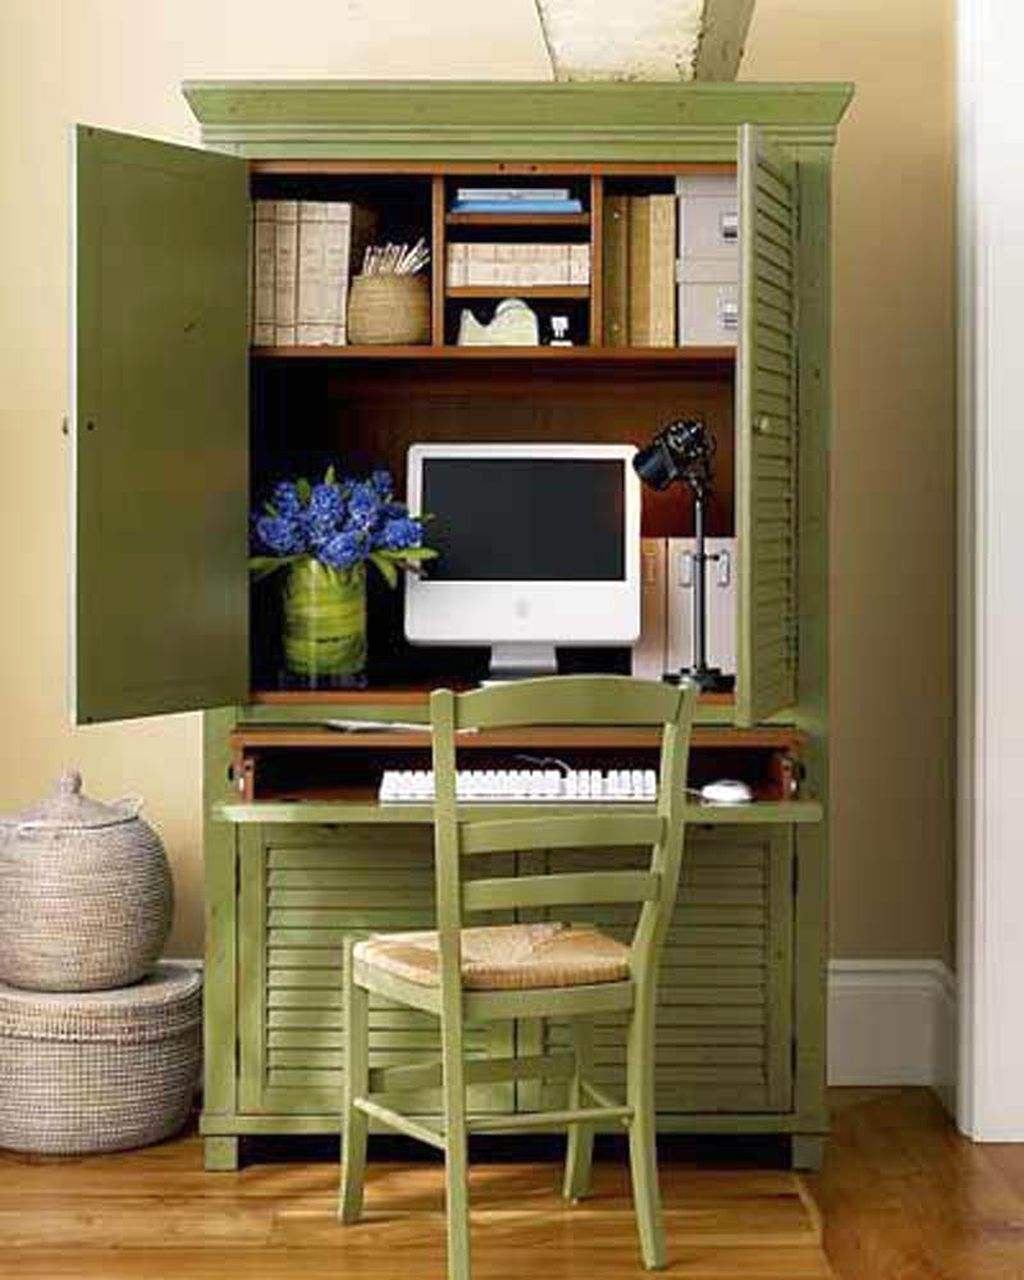 Green cupboard home office design ideas for small spaces - Home design for small place ...